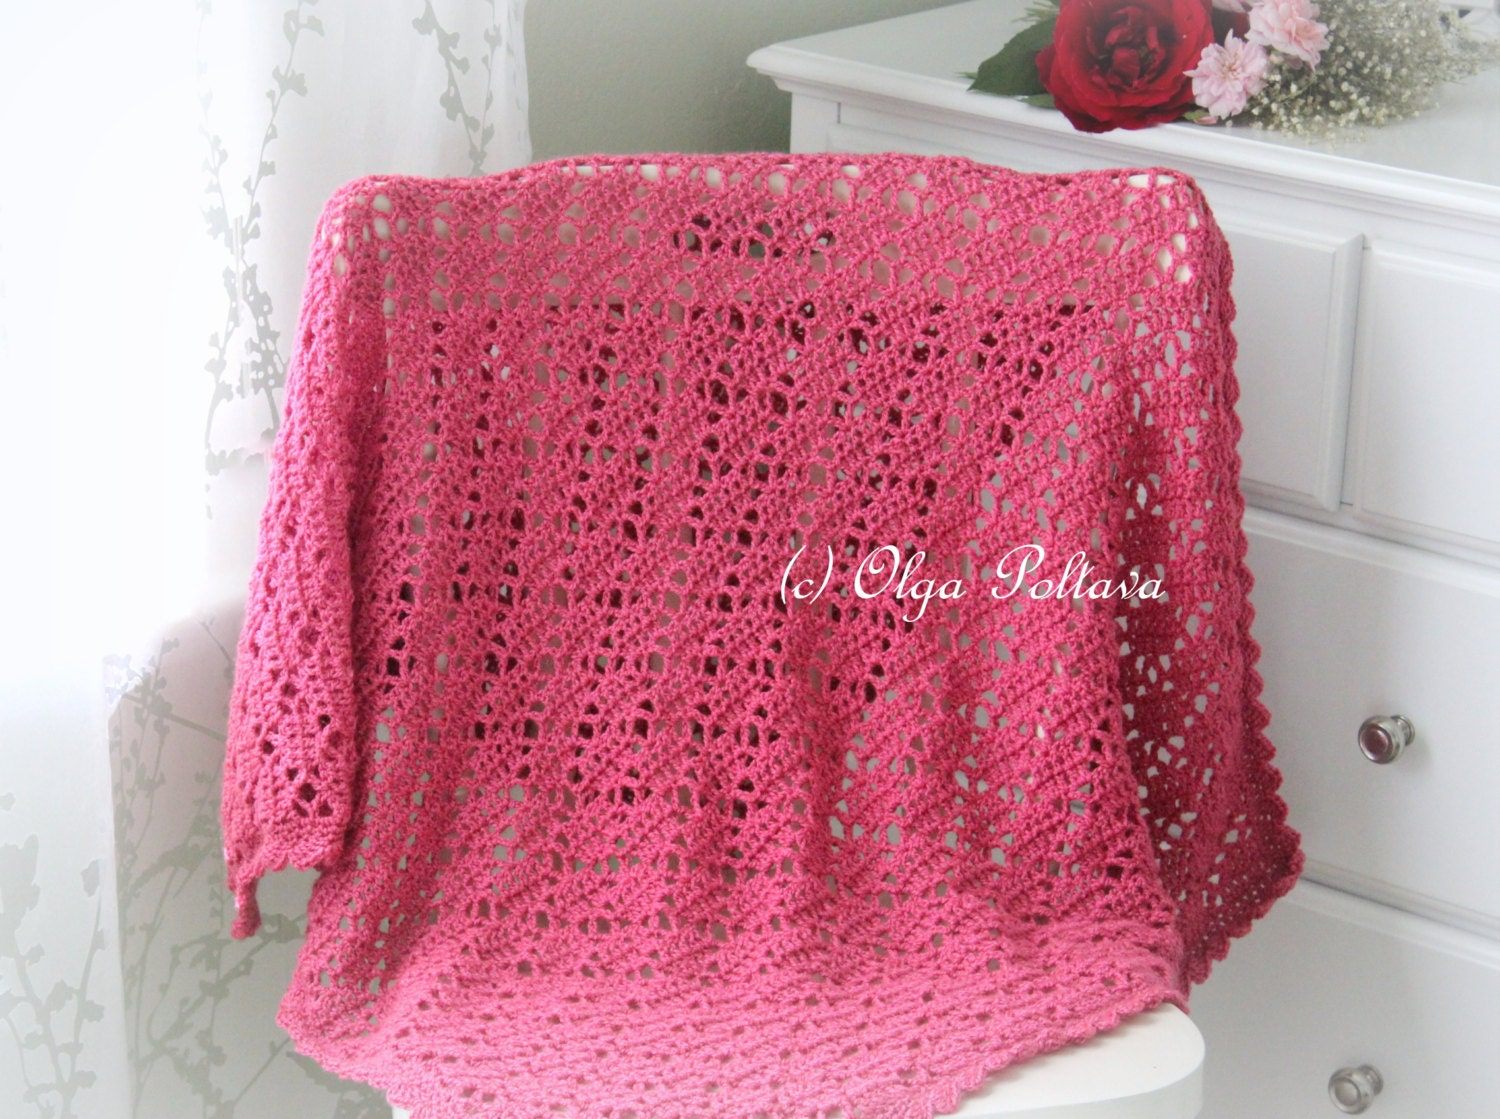 Crochet Baby Blanket Lace Pattern : Bright Pink Lace Crochet Baby Blanket Pattern Baby Afghan